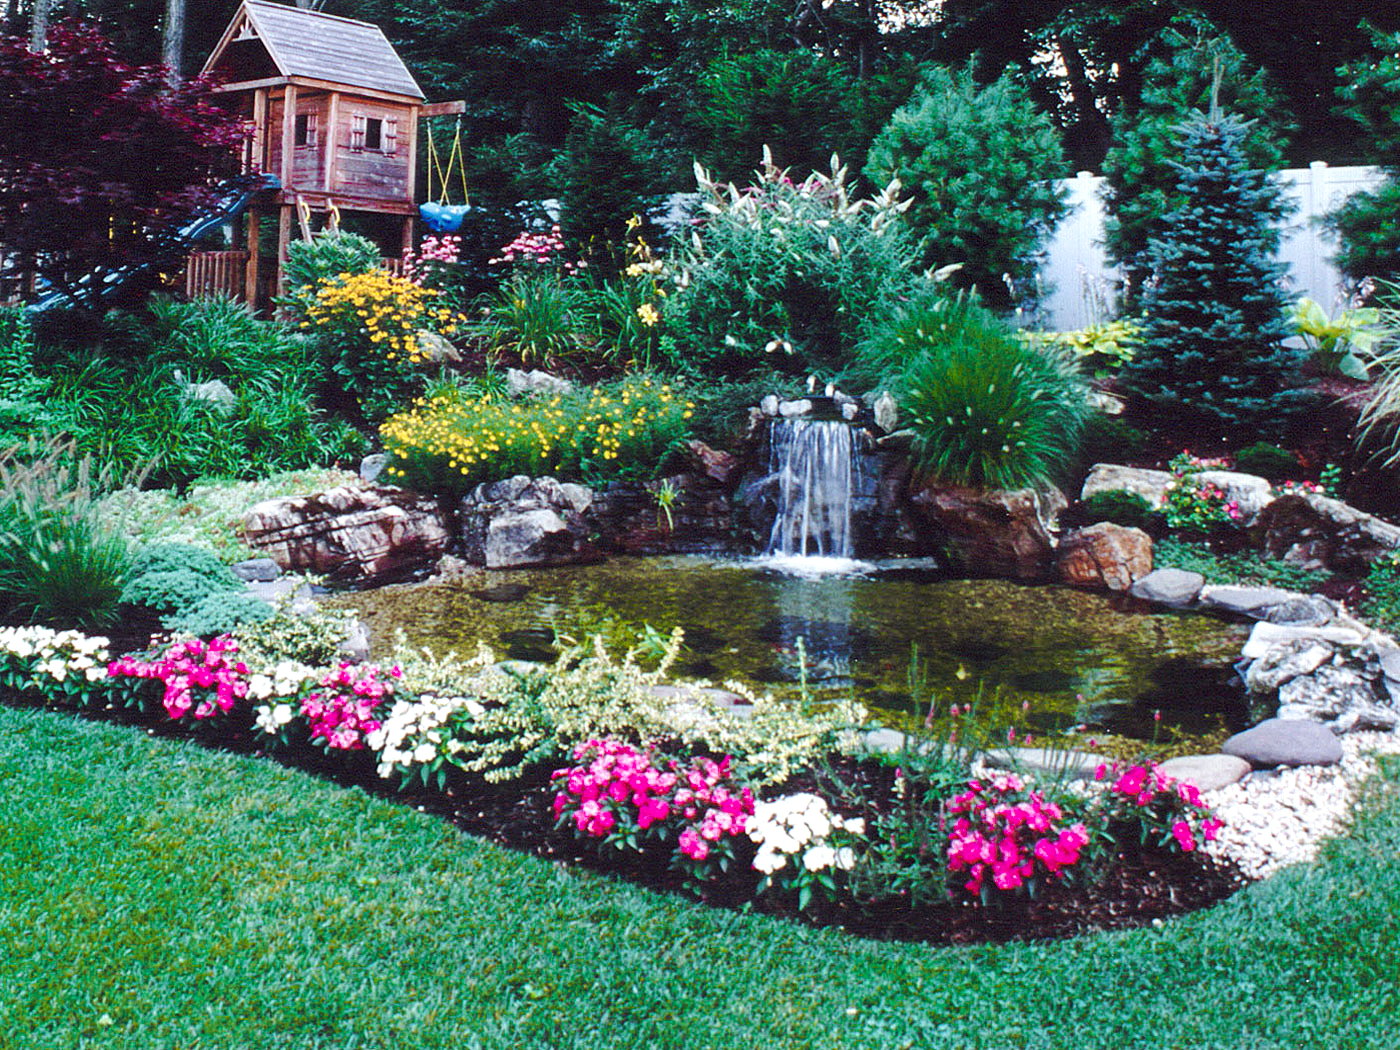 Fish pond in backyard and waterfall landscaper near me West Hampton